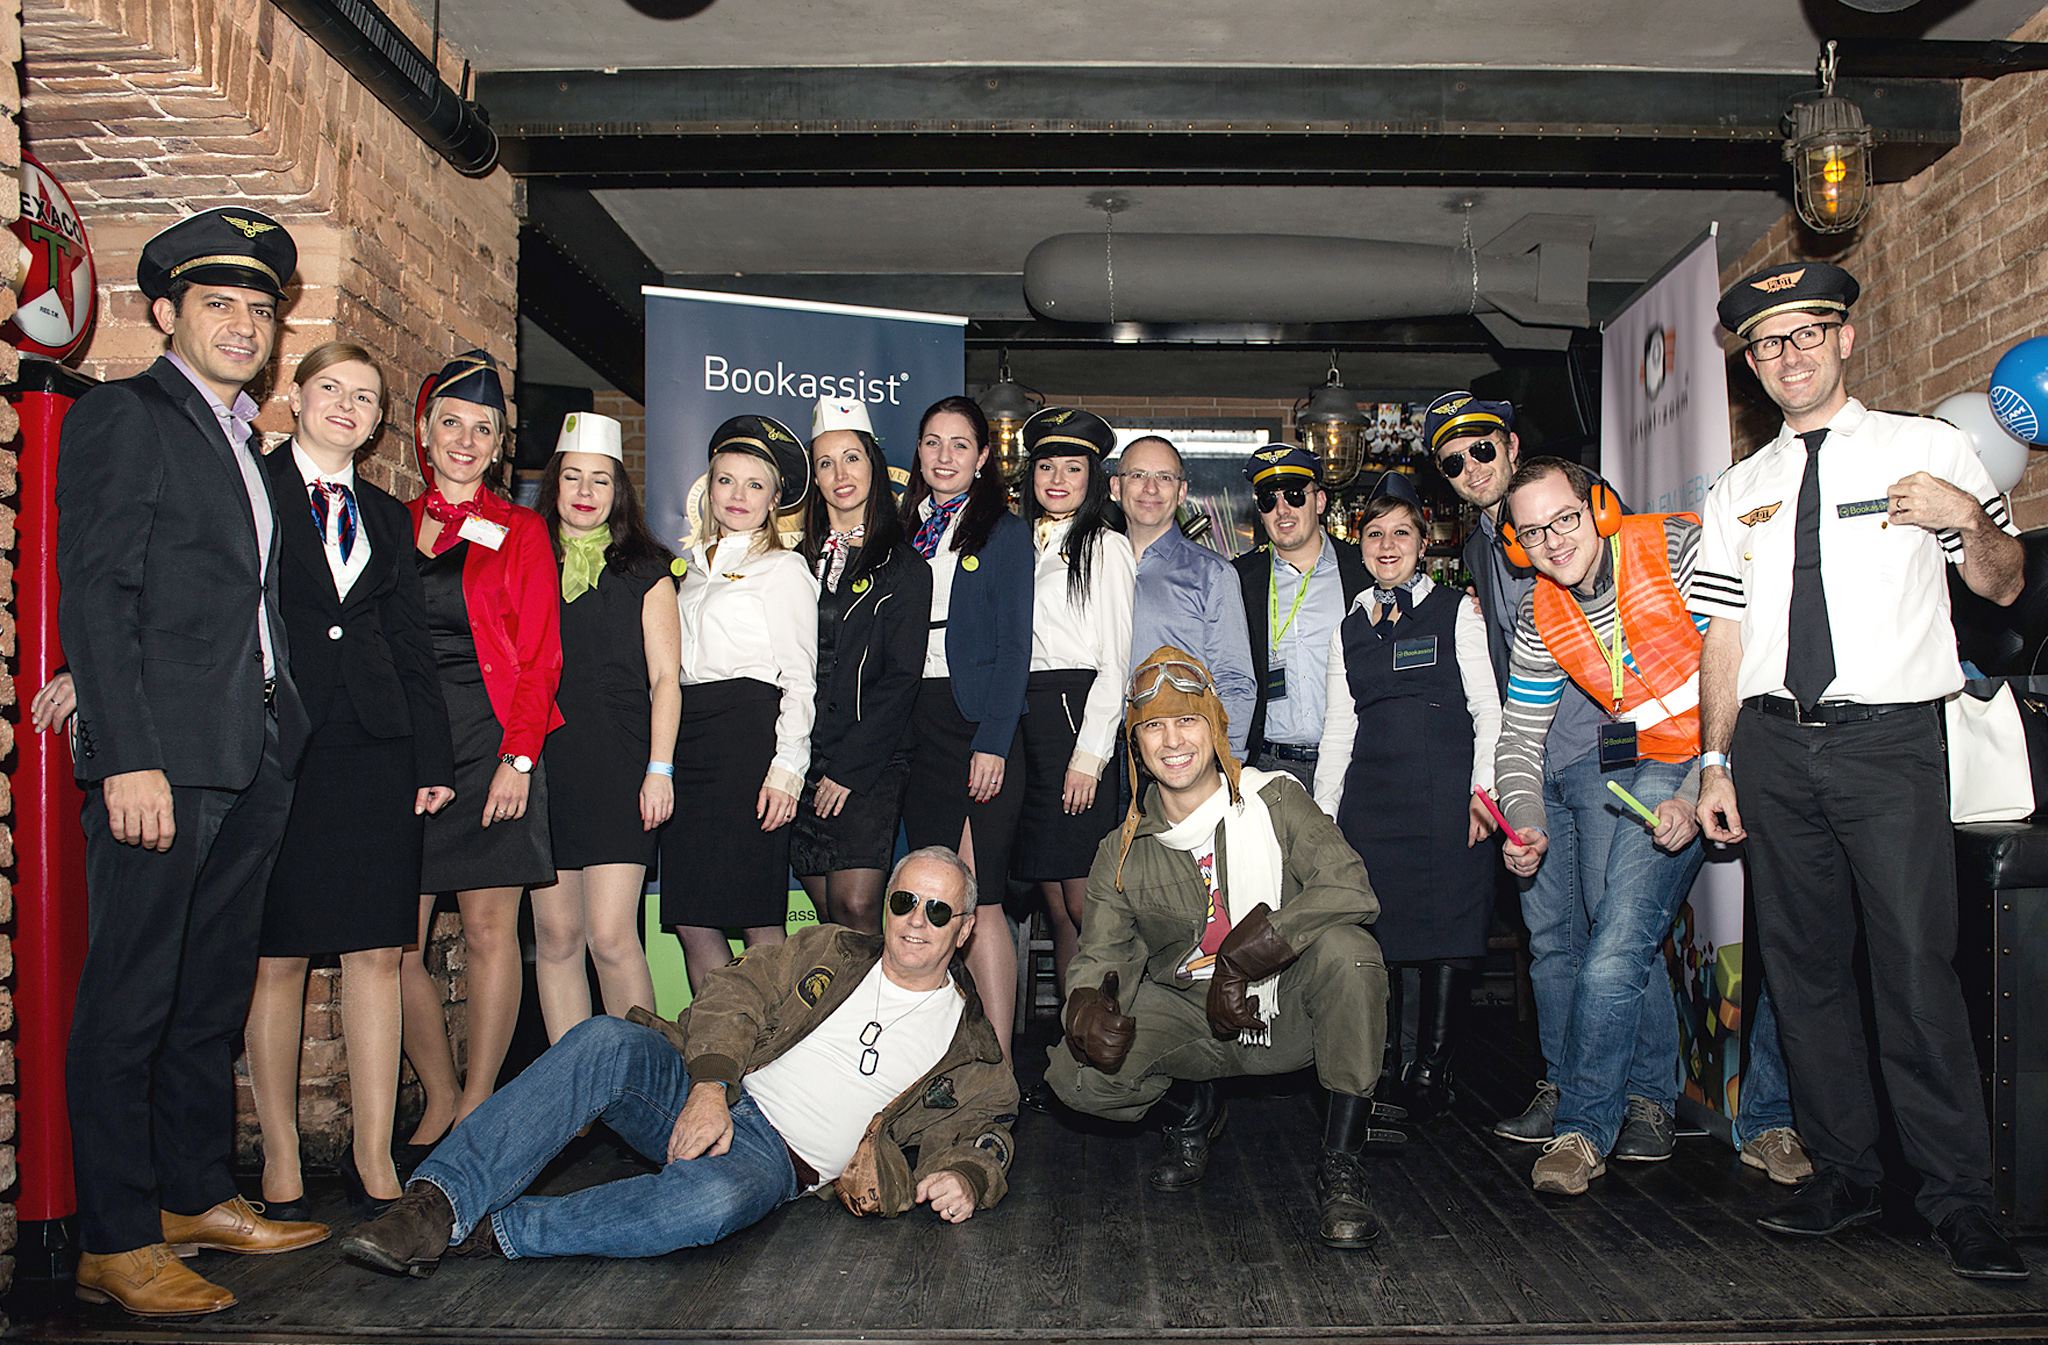 The Prague and Vienna teams, taking the aviation theme of the party very seriously.